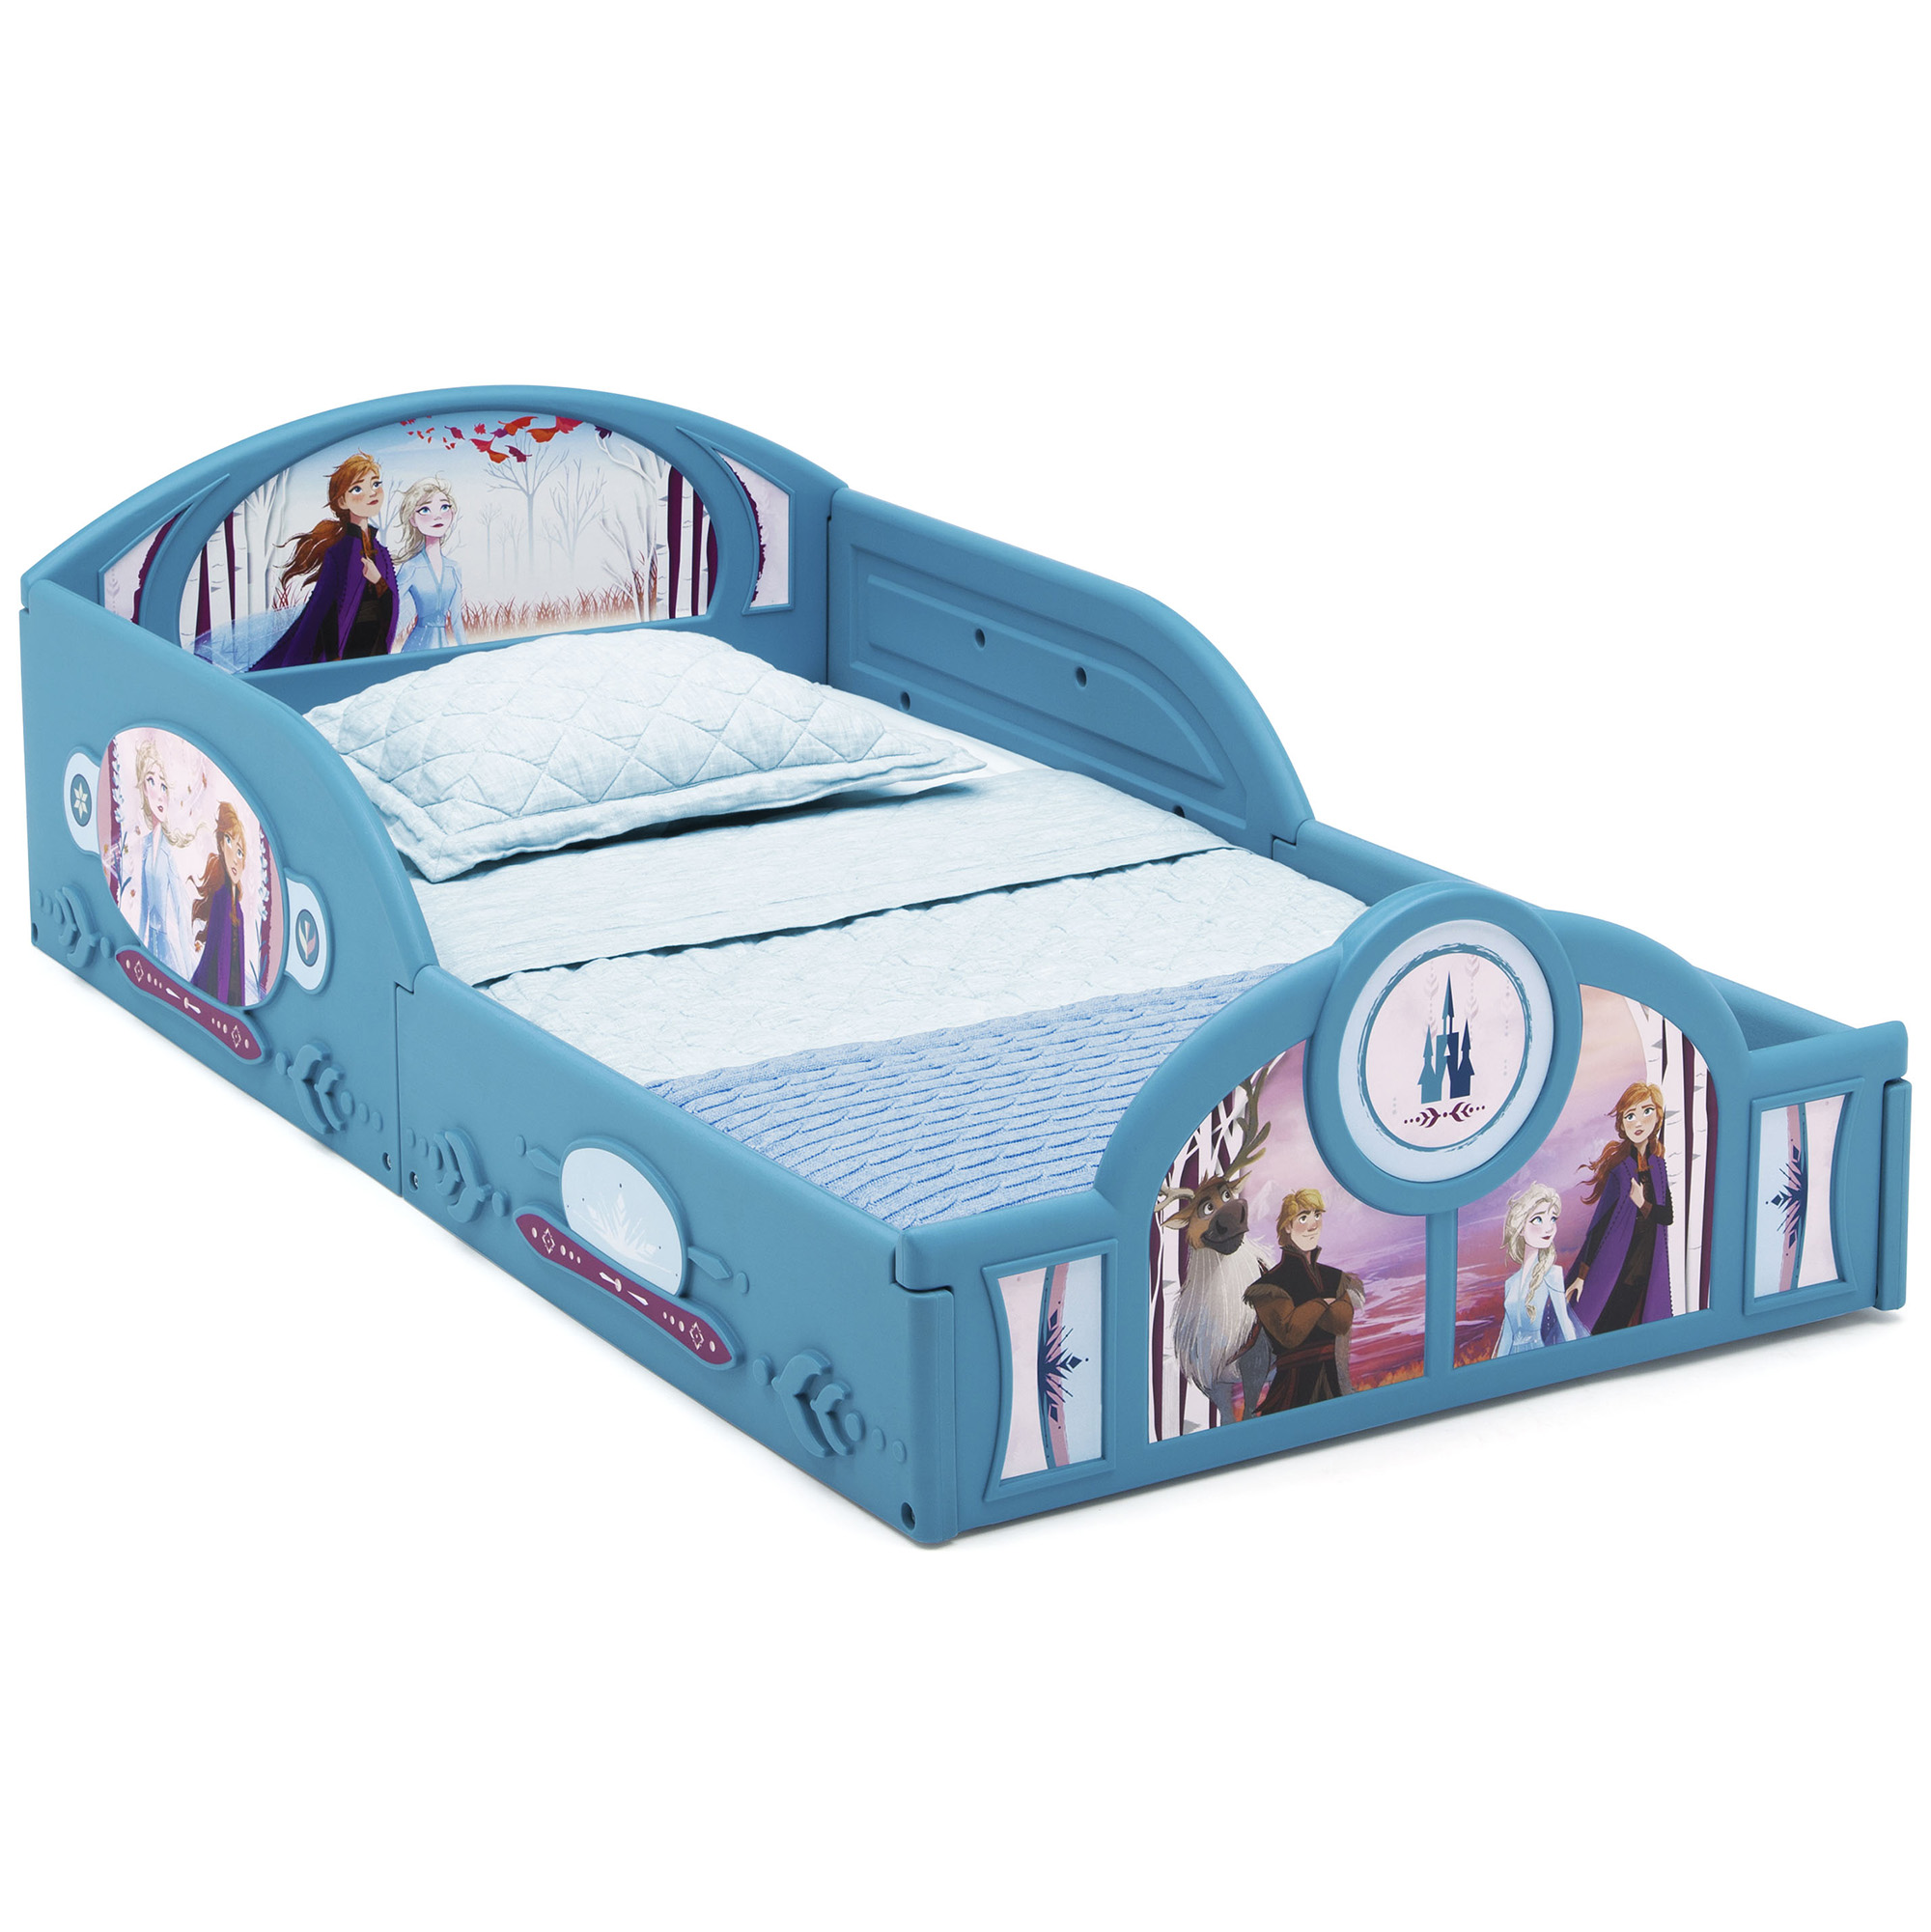 Disney Frozen Ii Plastic Sleep And Play Toddler Bed By Delta Children Walmart Com Walmart Com